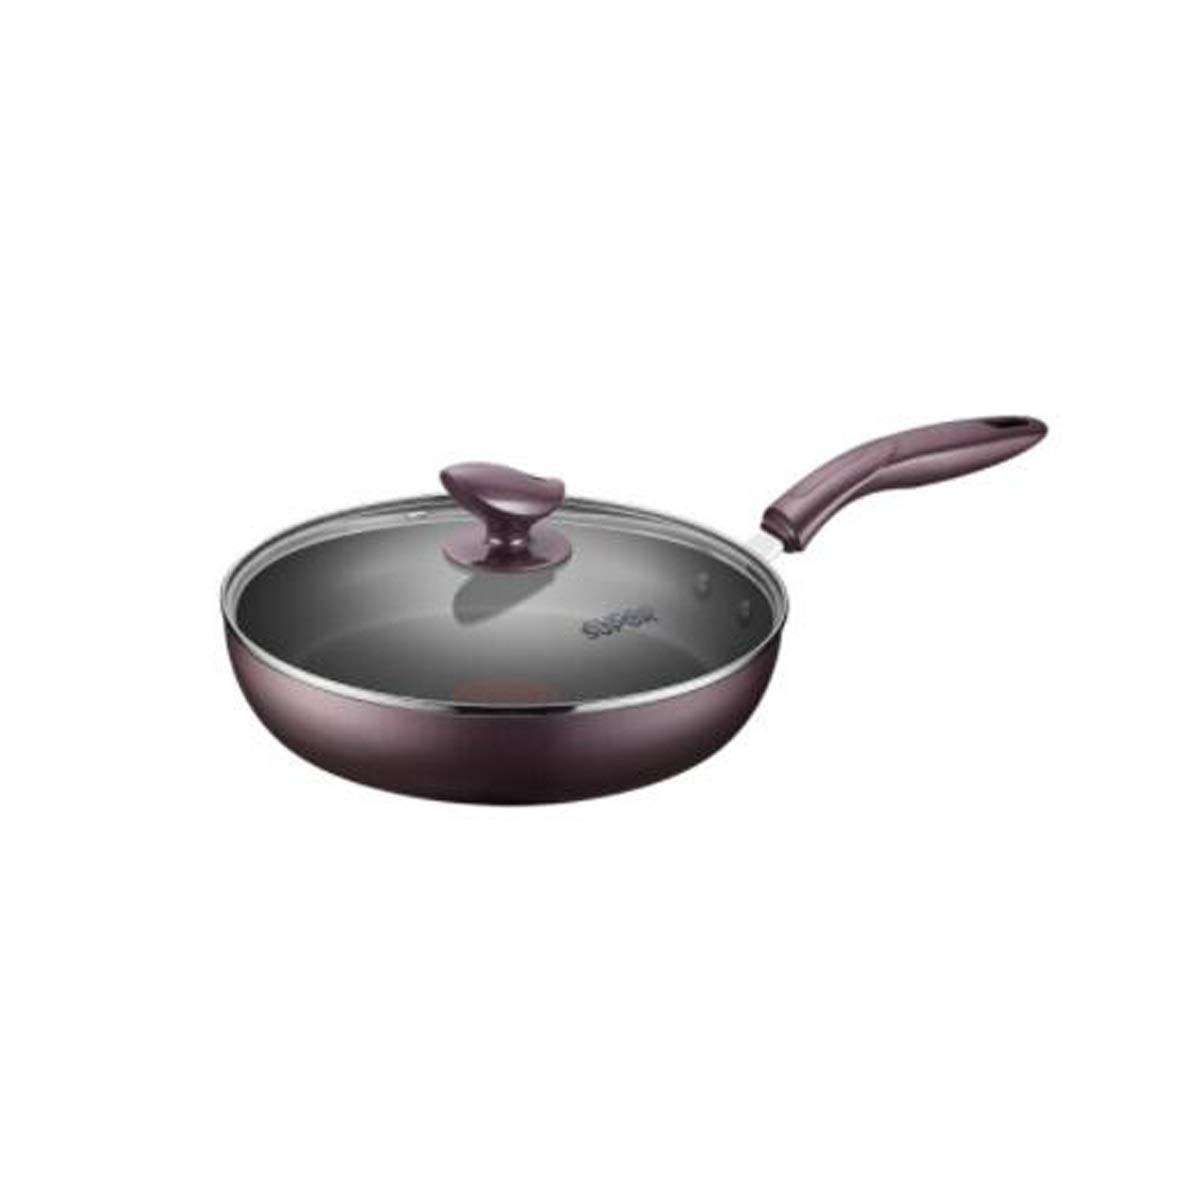 HXSD Frying Pan, Glass Cover Red Point Frying Pan, Non-Stick Cooker Induction Cooker Universal High Material (Color : Purple, Size : 28cm)